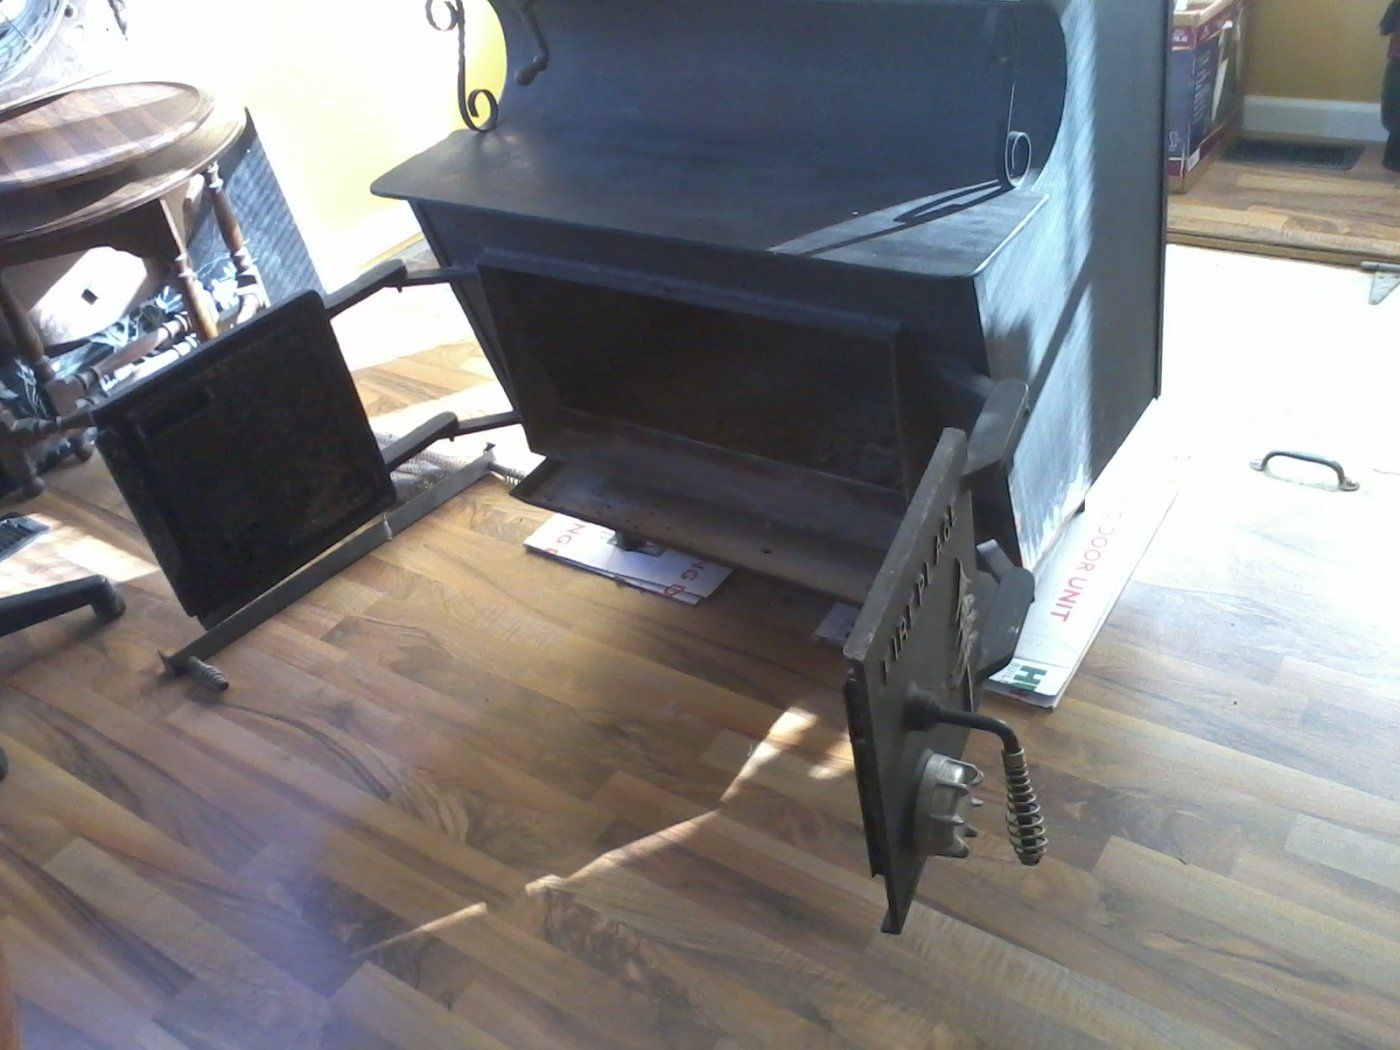 Schrader Fireplace pedestal stove questions | Hearth.com Forums Home